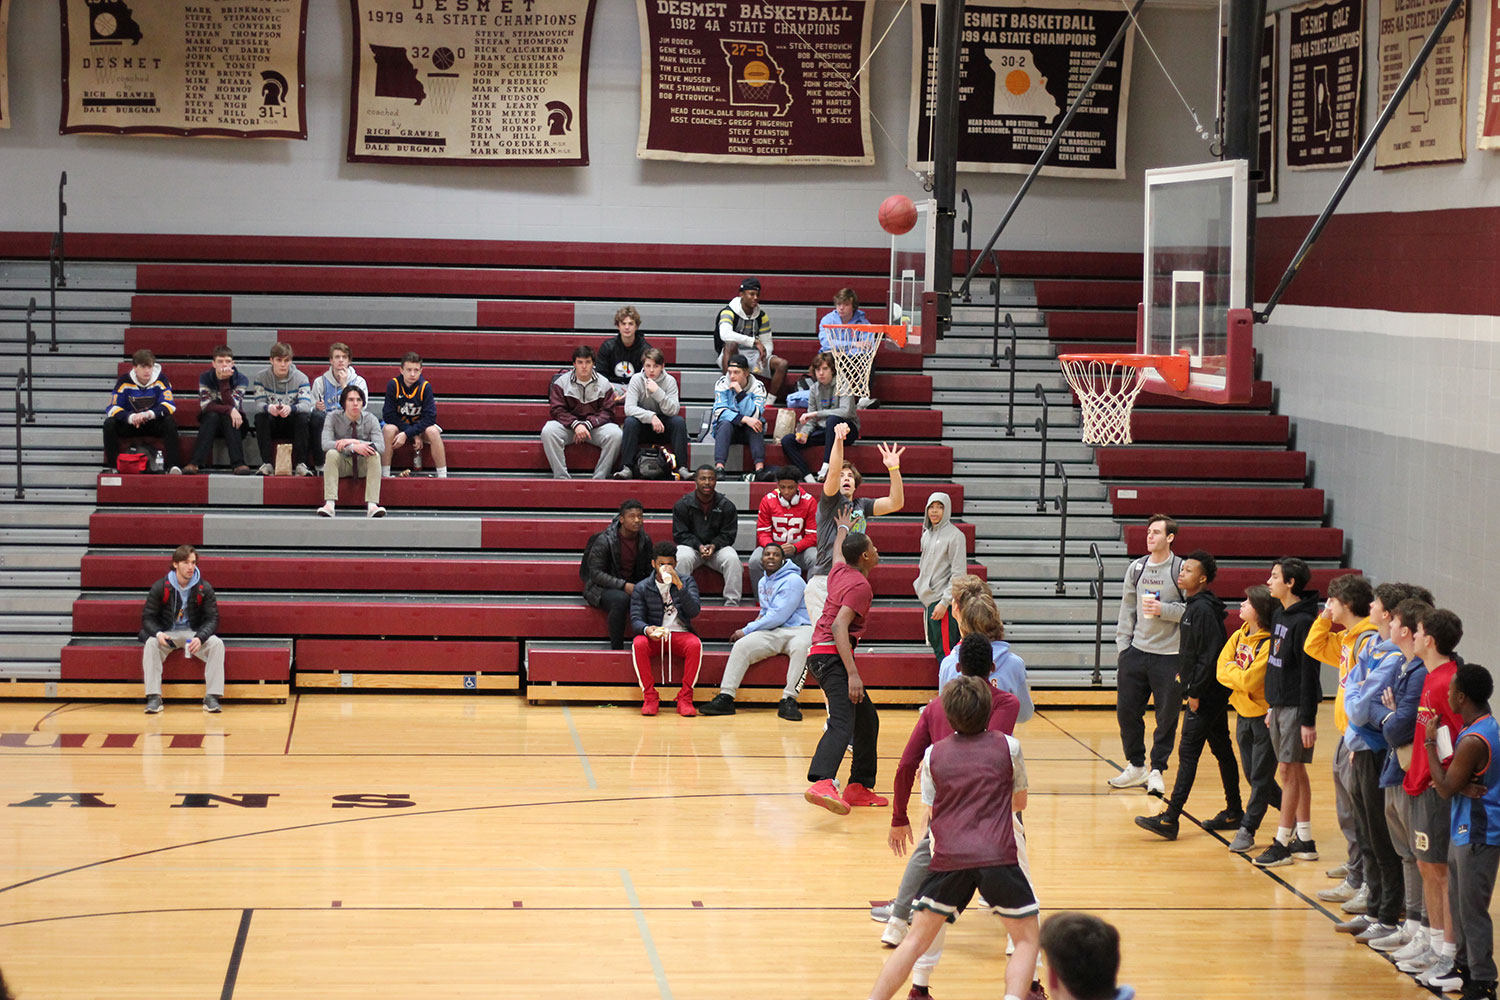 Senior Luke Wetzel steps back and shoot a three pointer to extend their lead.